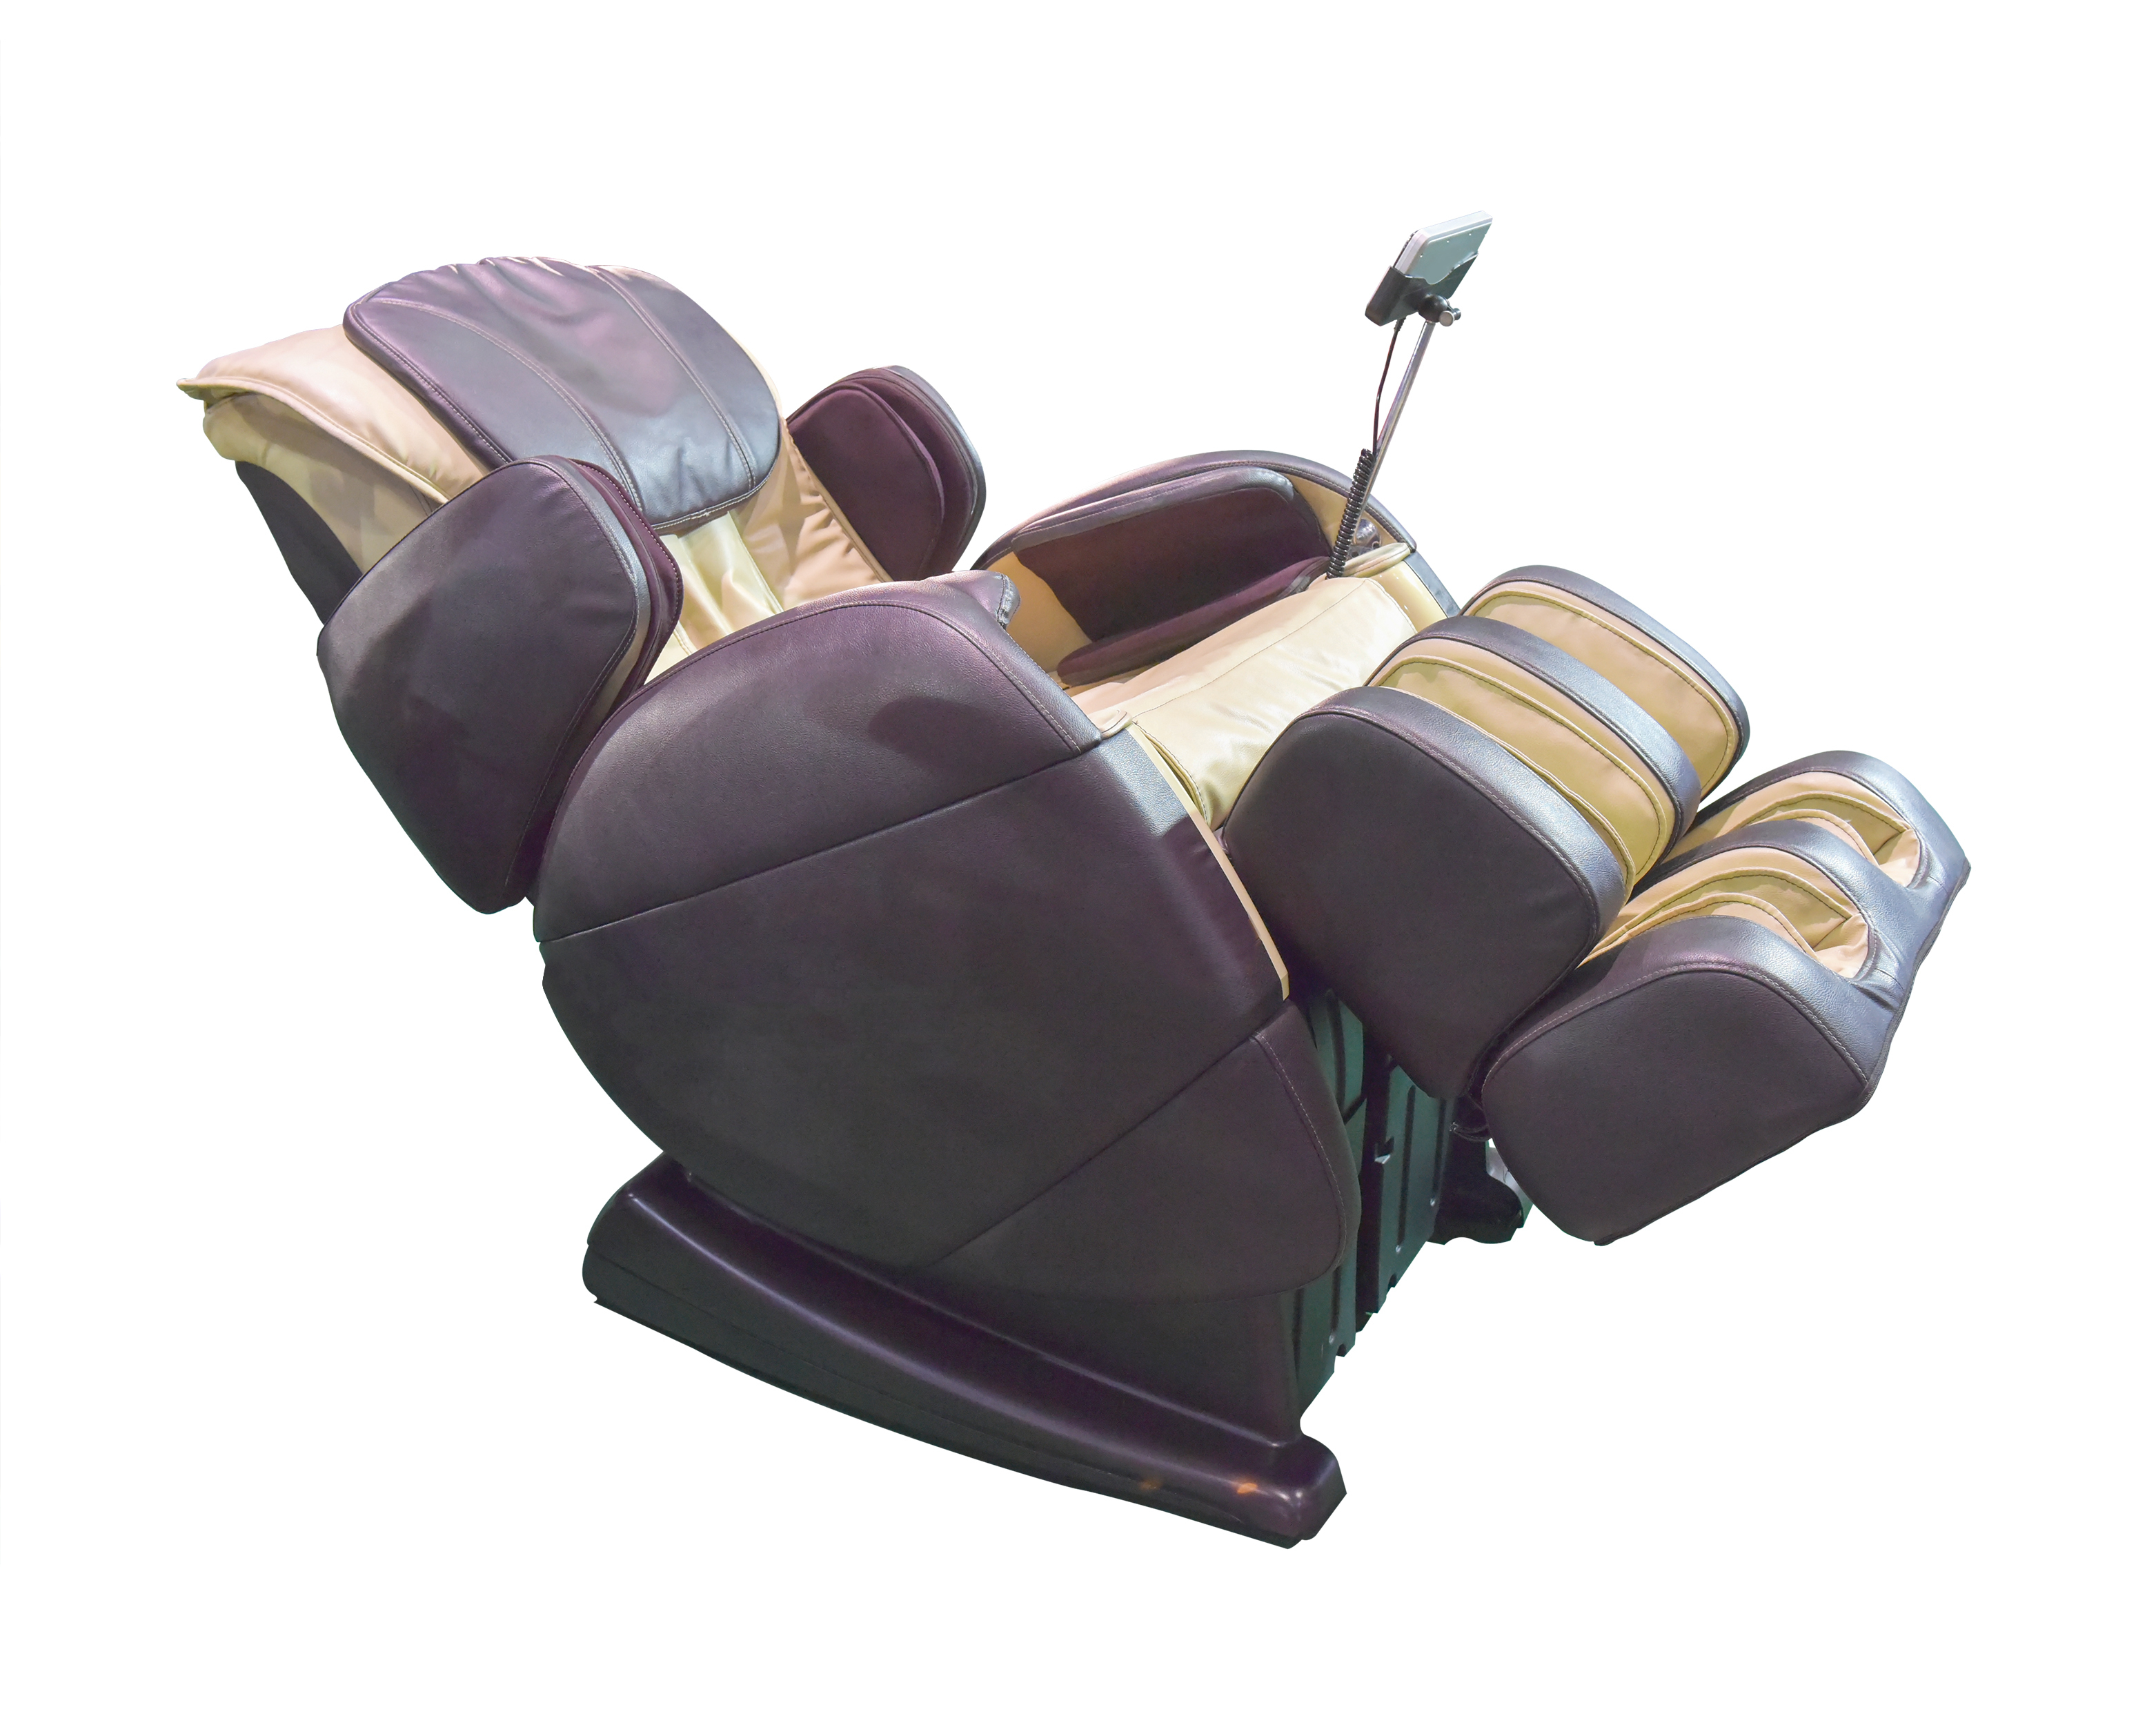 Top Rated Massage Chairs High Quality Leather Massage Chair Graphic 10 Machines